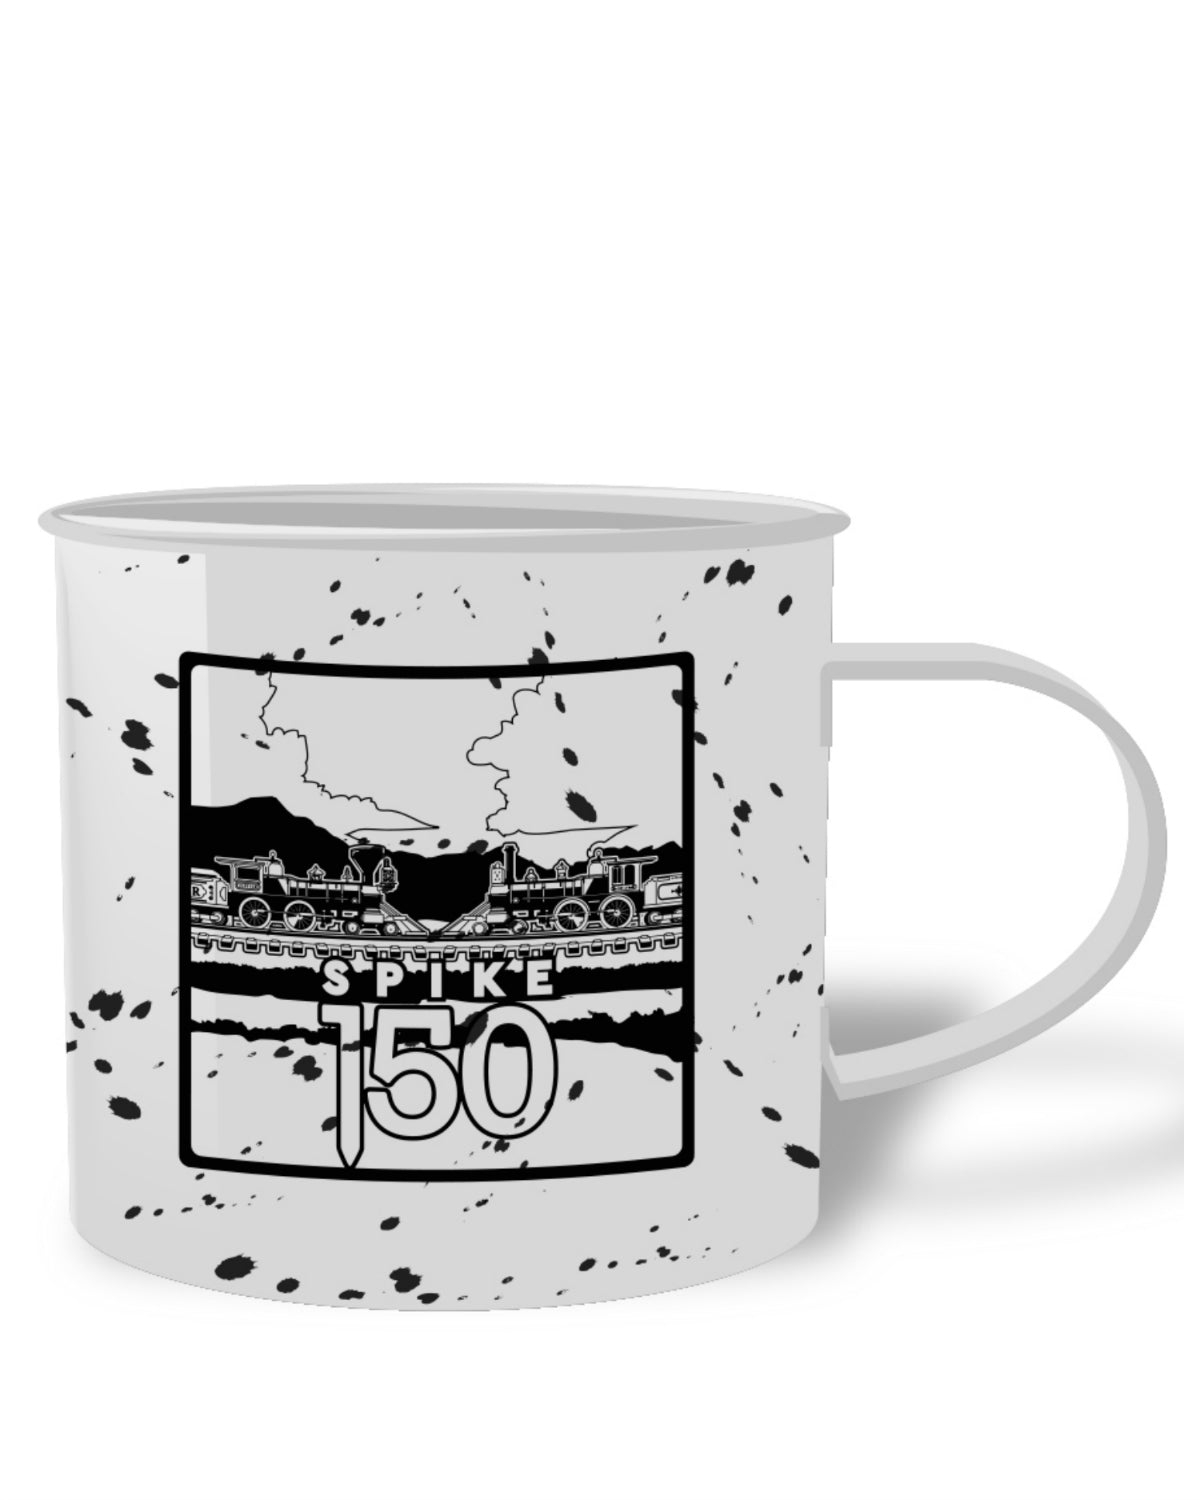 Set of 4 Commemorative Mugs